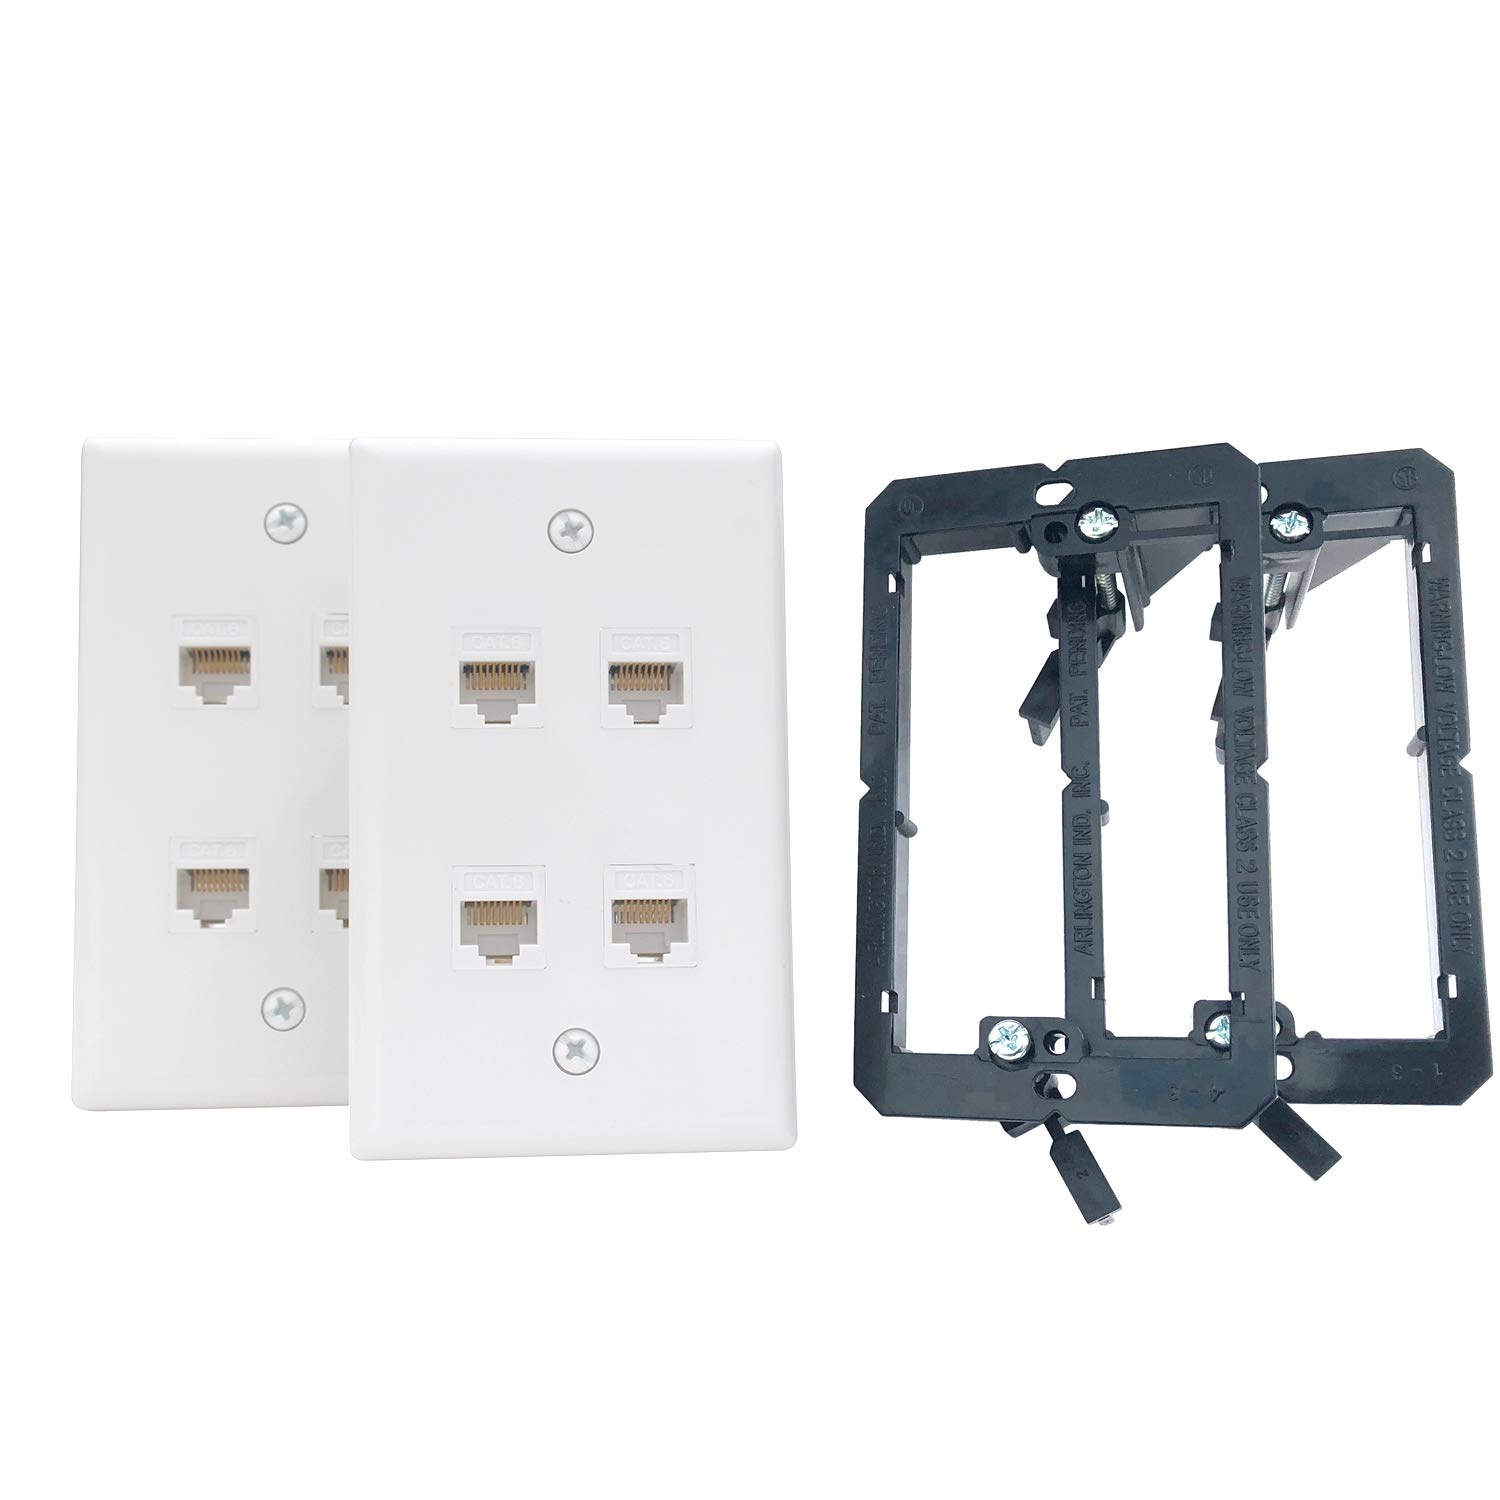 KCC Industries 4-Port Cat6 Ethernet Cable Wall Plate | Female-Female with Mounting Bracket +UL/CSA Listed Safe+ (2-Pack)